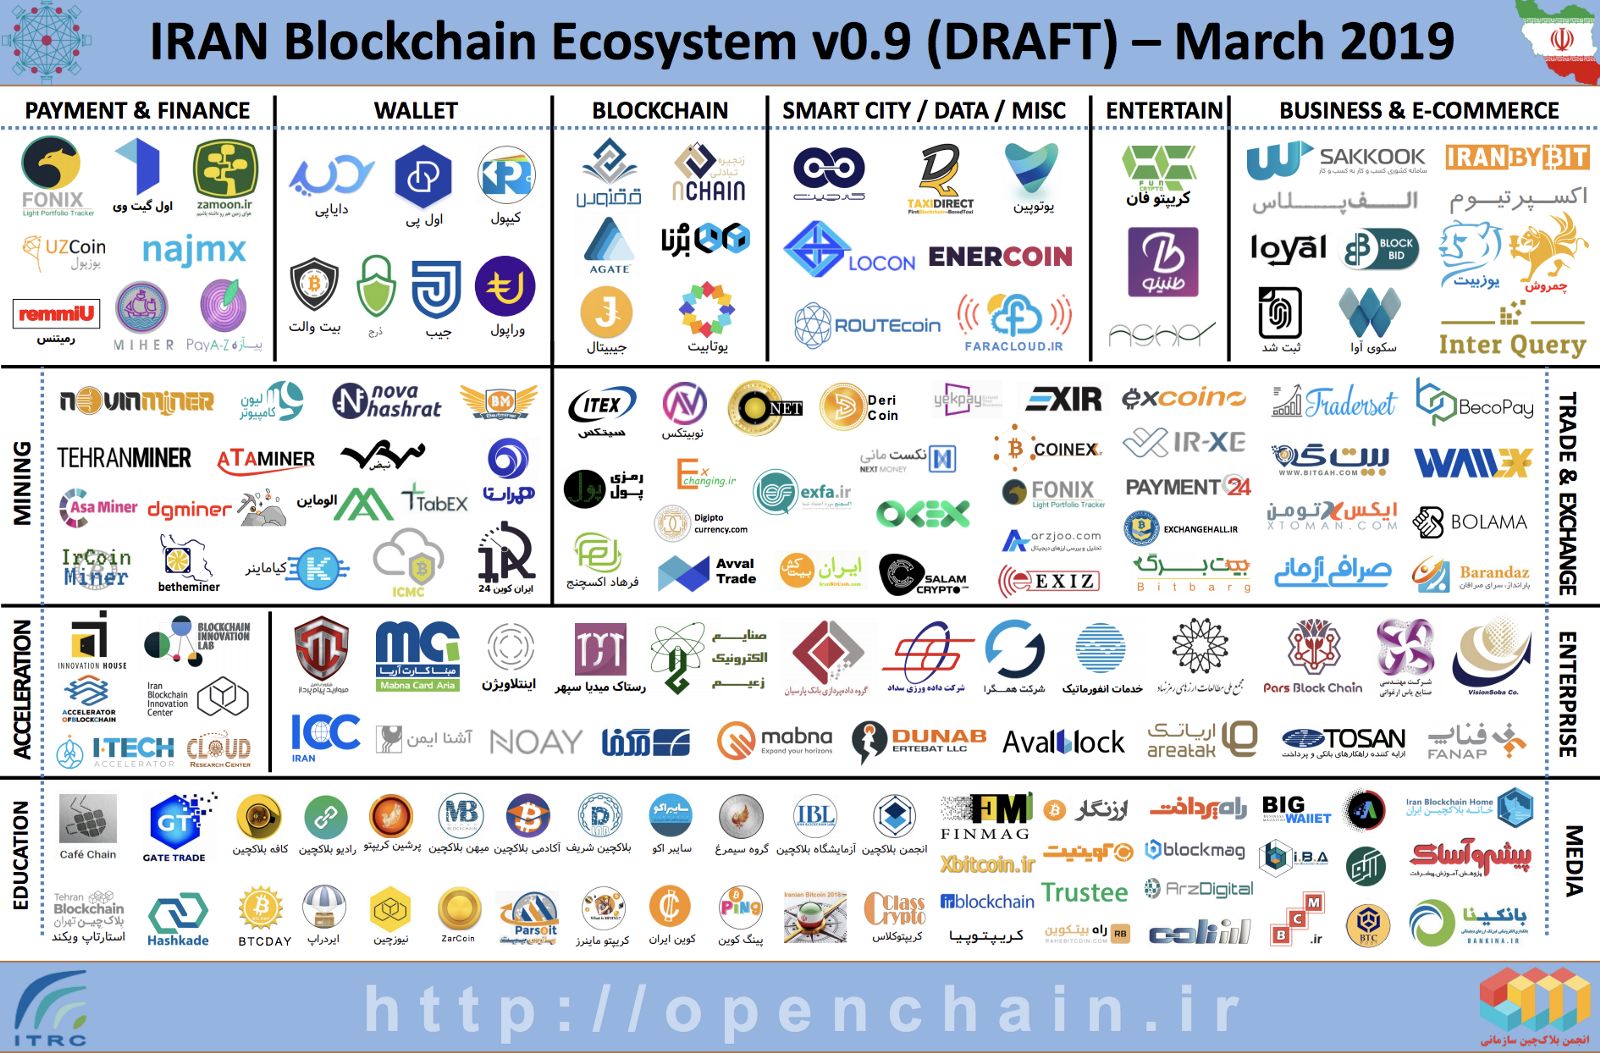 Evaluating the landscape of blockchain technology and